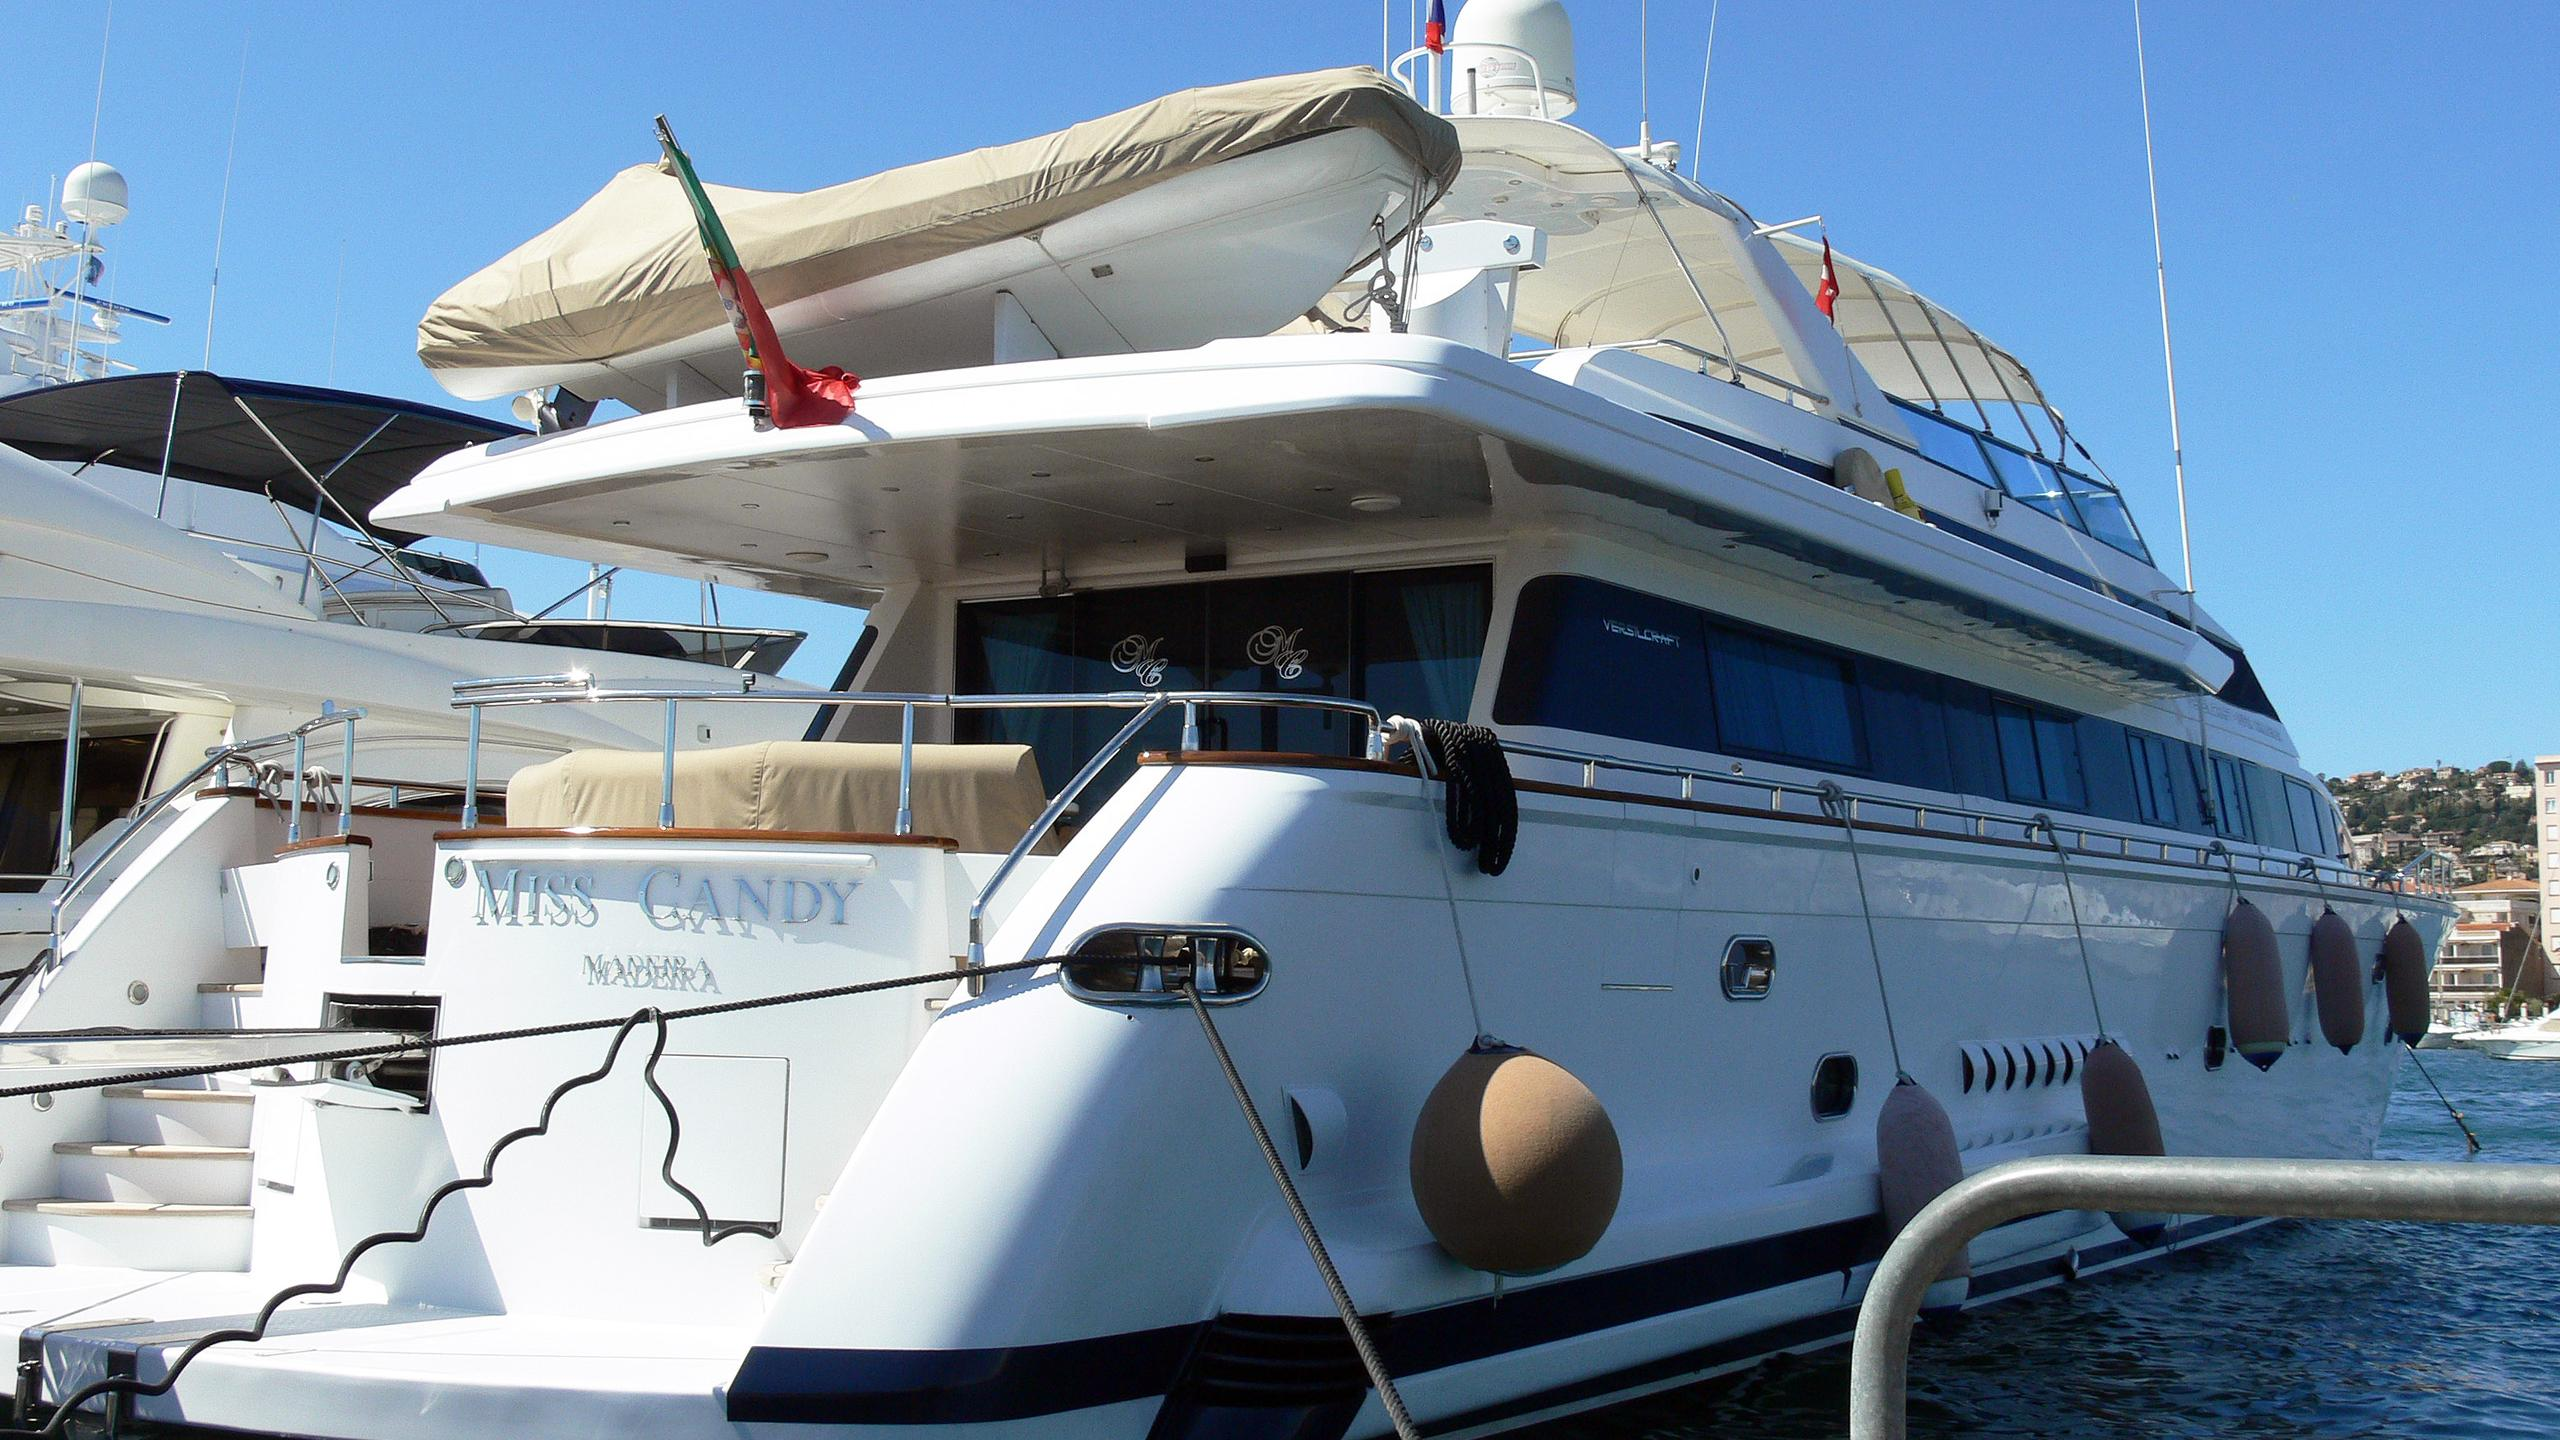 miss-candy-motor-yacht-versilcraft-1996-30m-moored-stern